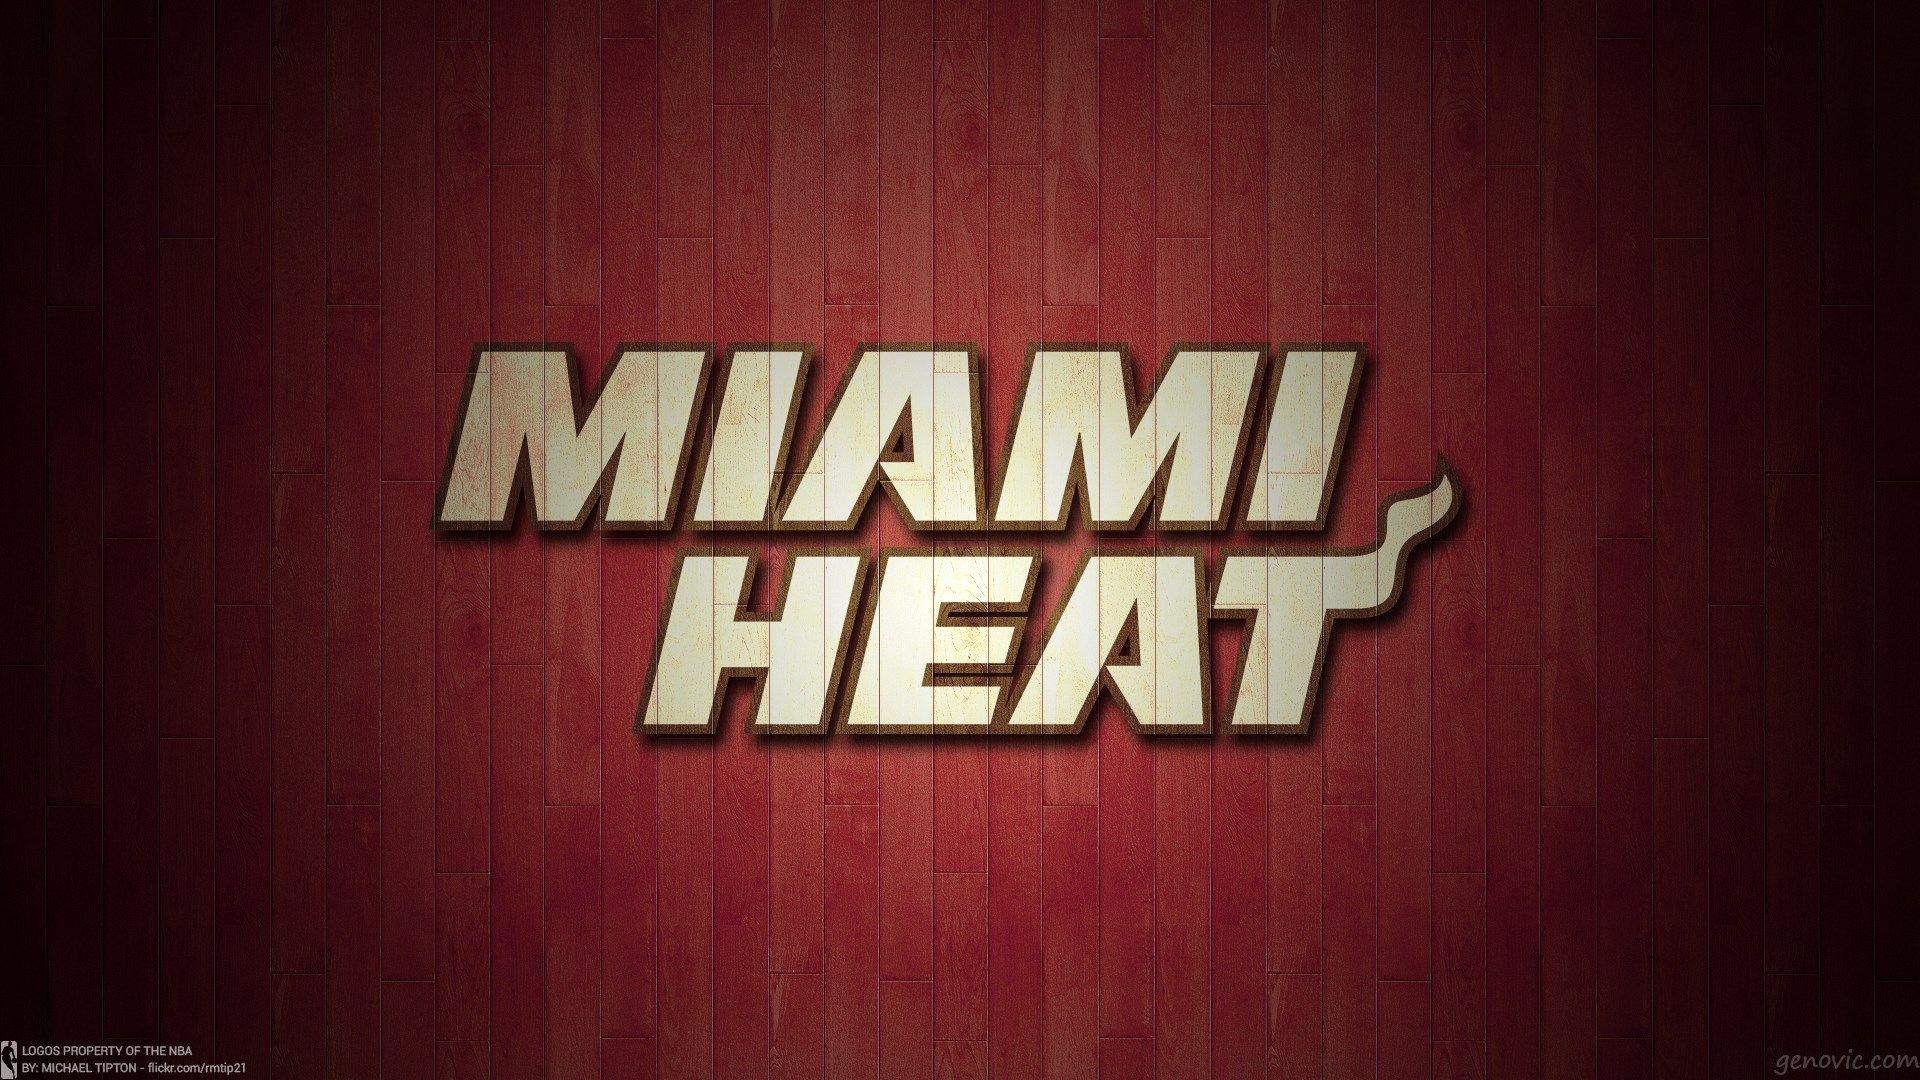 Miami heat wallpapers 2016 hd wallpaper cave - Miami heat wallpaper android download ...